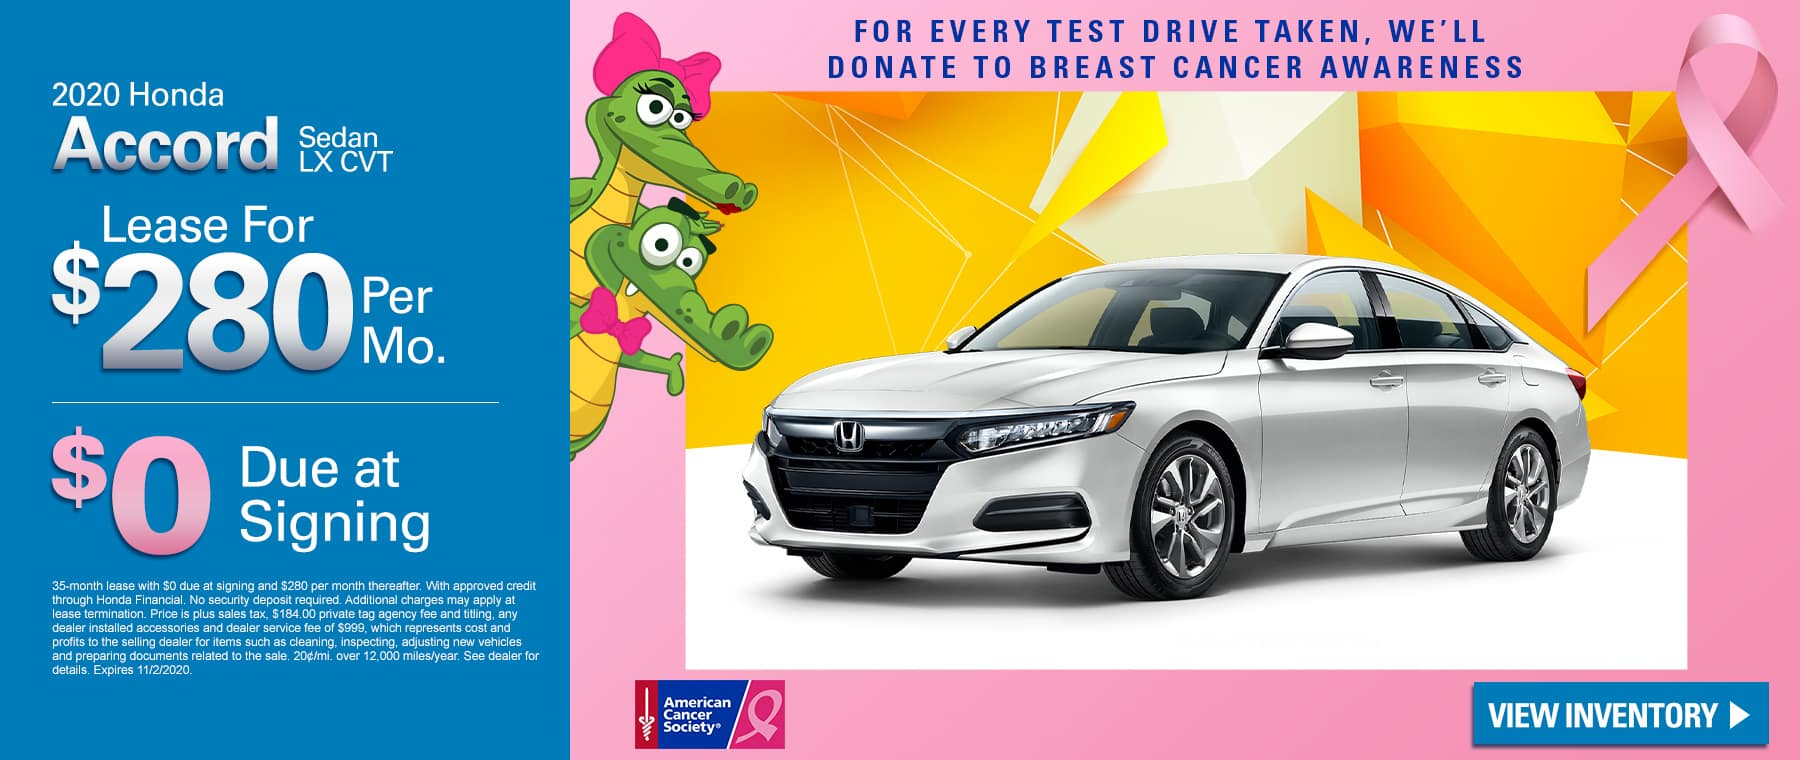 New 2020 Honda Accord Sedan LX CVT | Lease For $280 Per Month | $0 Due At Signing | For Every Test Drive Taken, We'll Donate To Breast Cancer Research